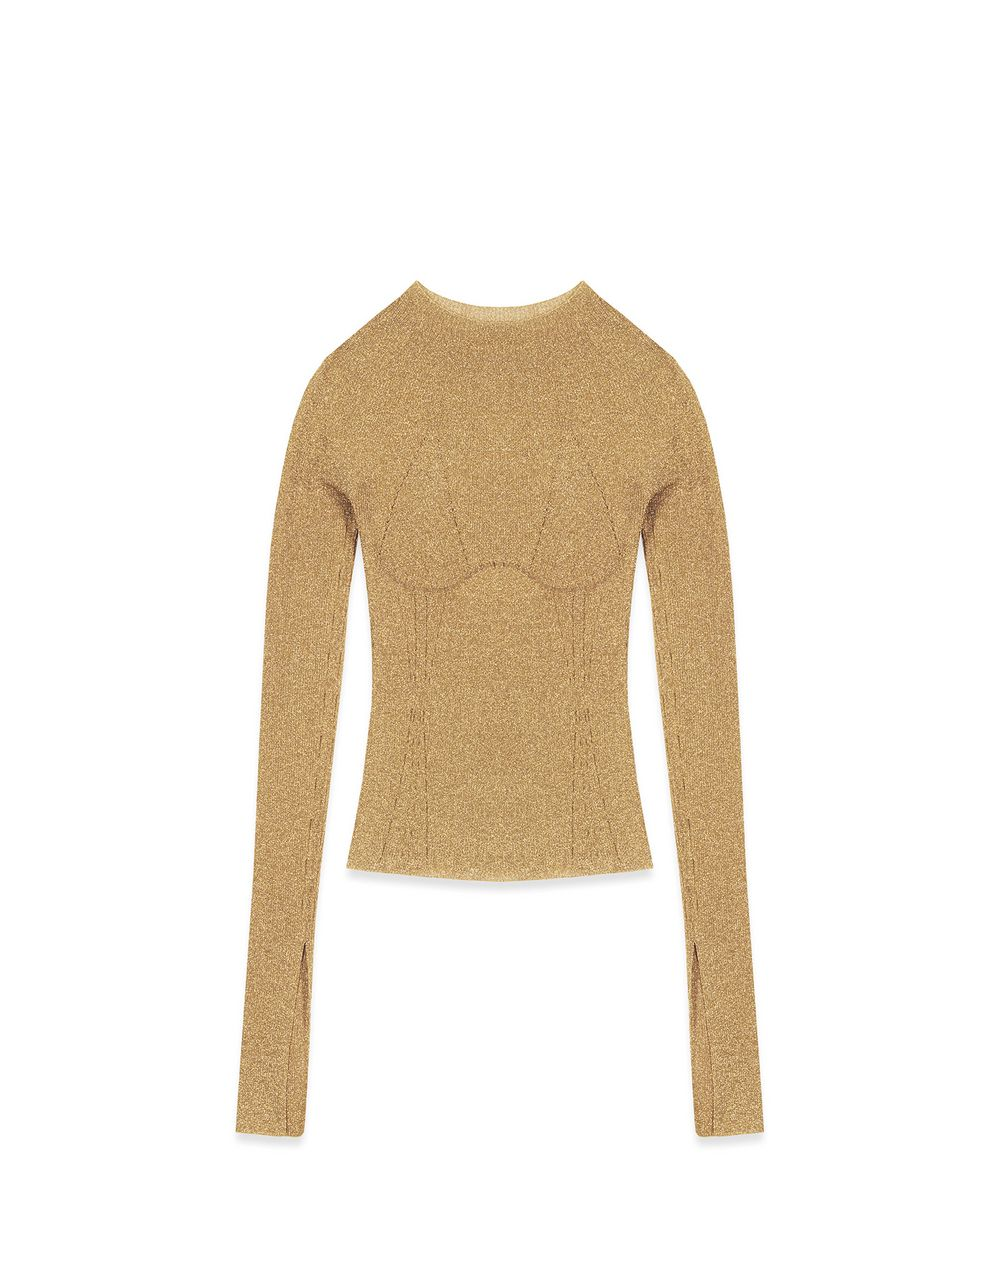 LUREX SWEATER - Lanvin